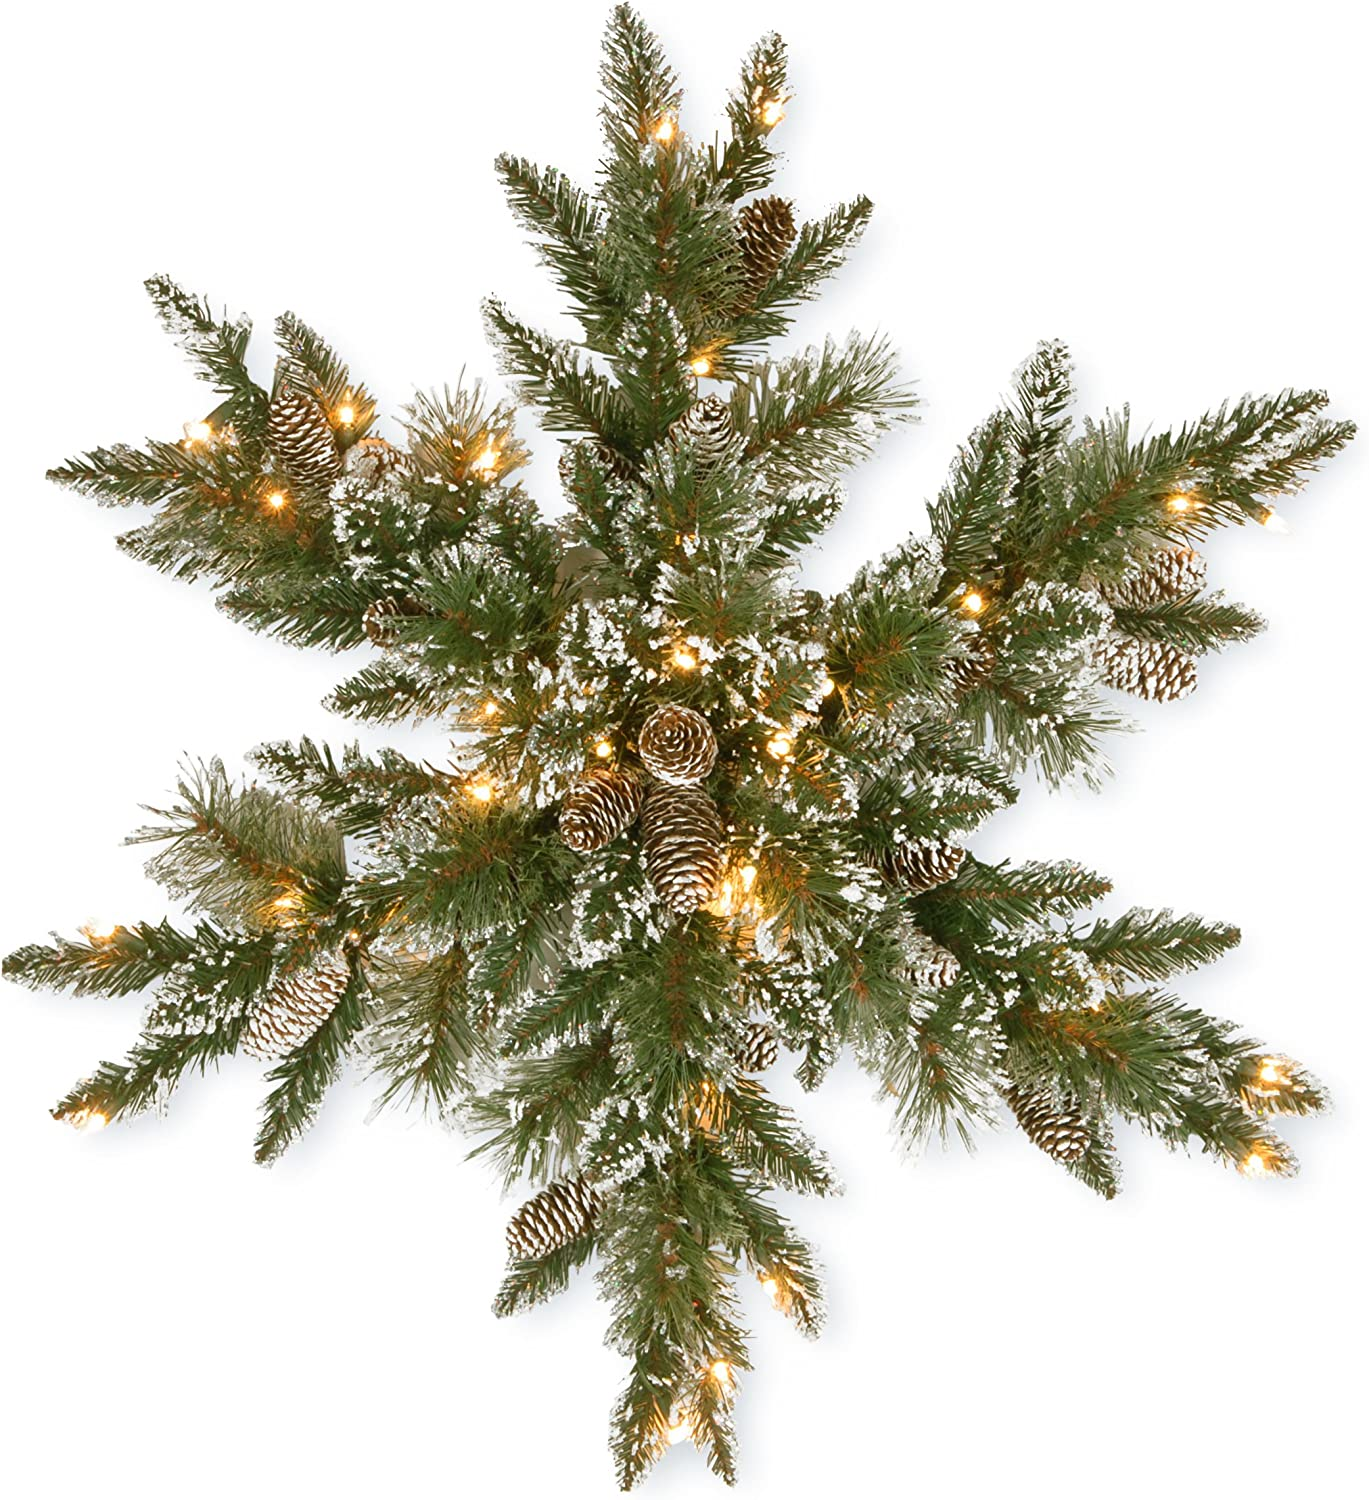 National Tree Company Pre-lit Artificial Christmas Star Shaped Wreath | Includes Pre-strung LED Lights | Glittery Bristle Pine - 32 Inch